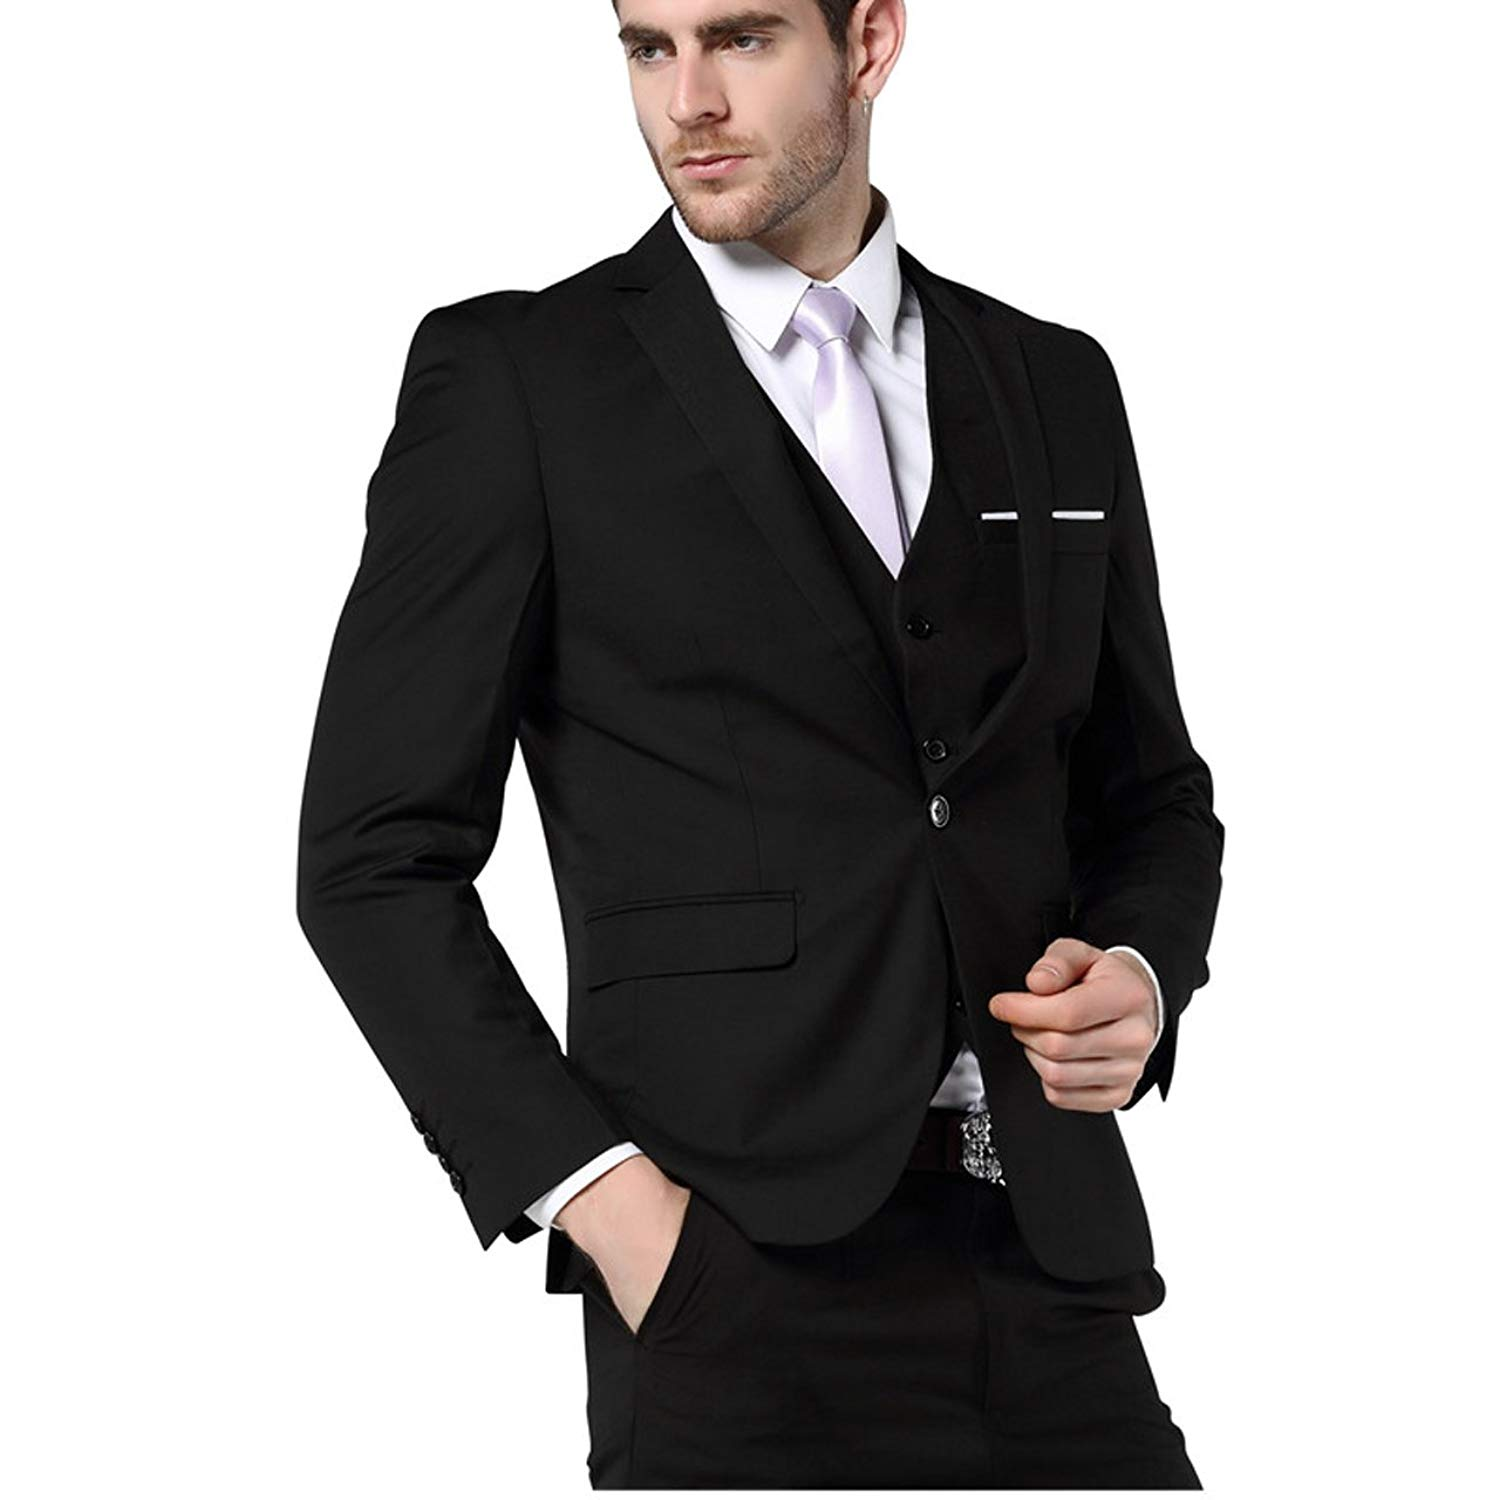 Cheap Mens 3 Piece Suits Uk Find Mens 3 Piece Suits Uk Deals On Line At Alibaba Com